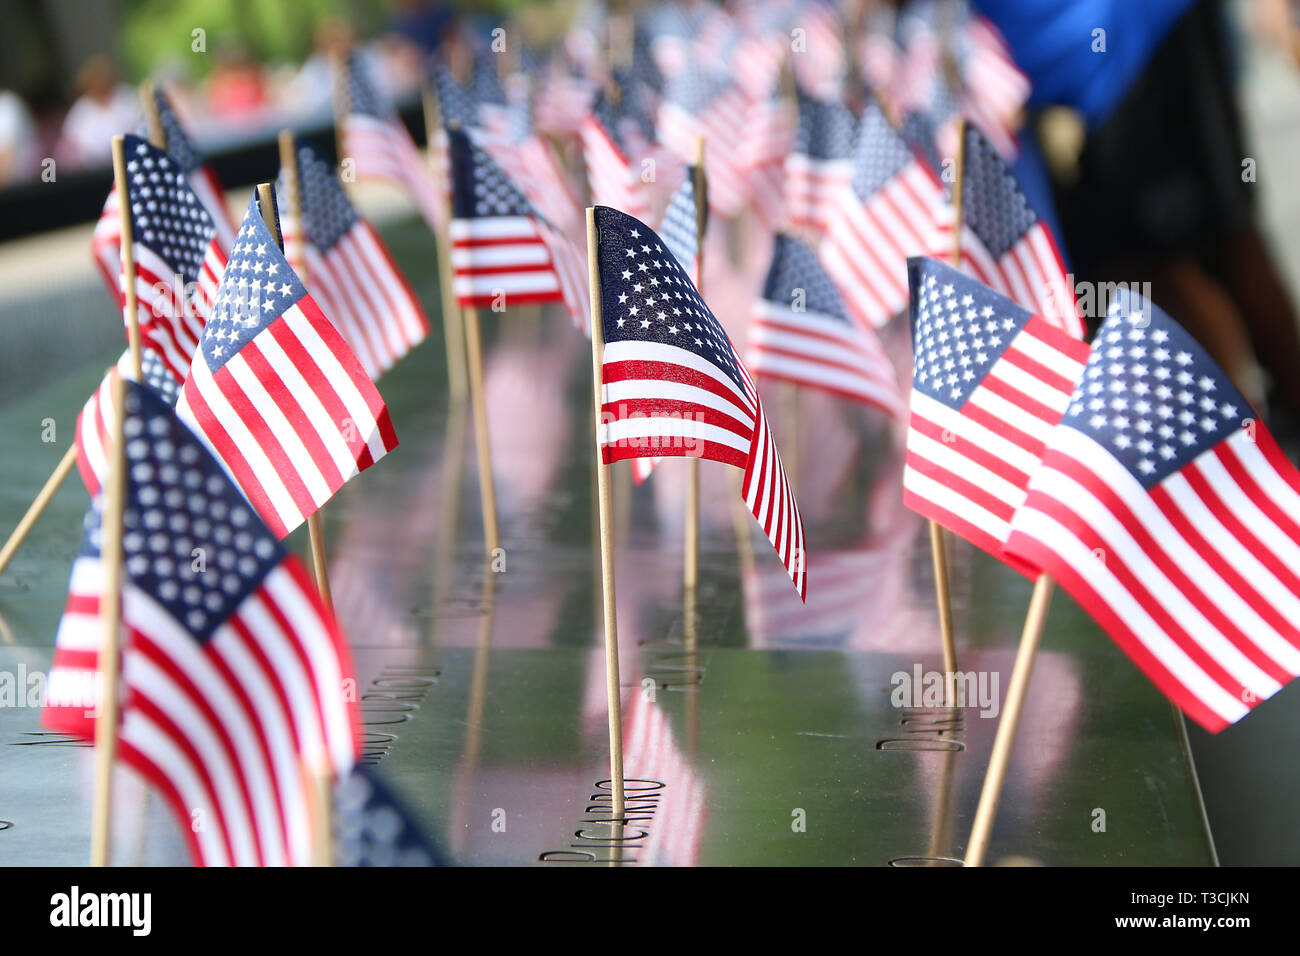 Flags at National September 11 Memorial, NYC 4th July Stock Photo